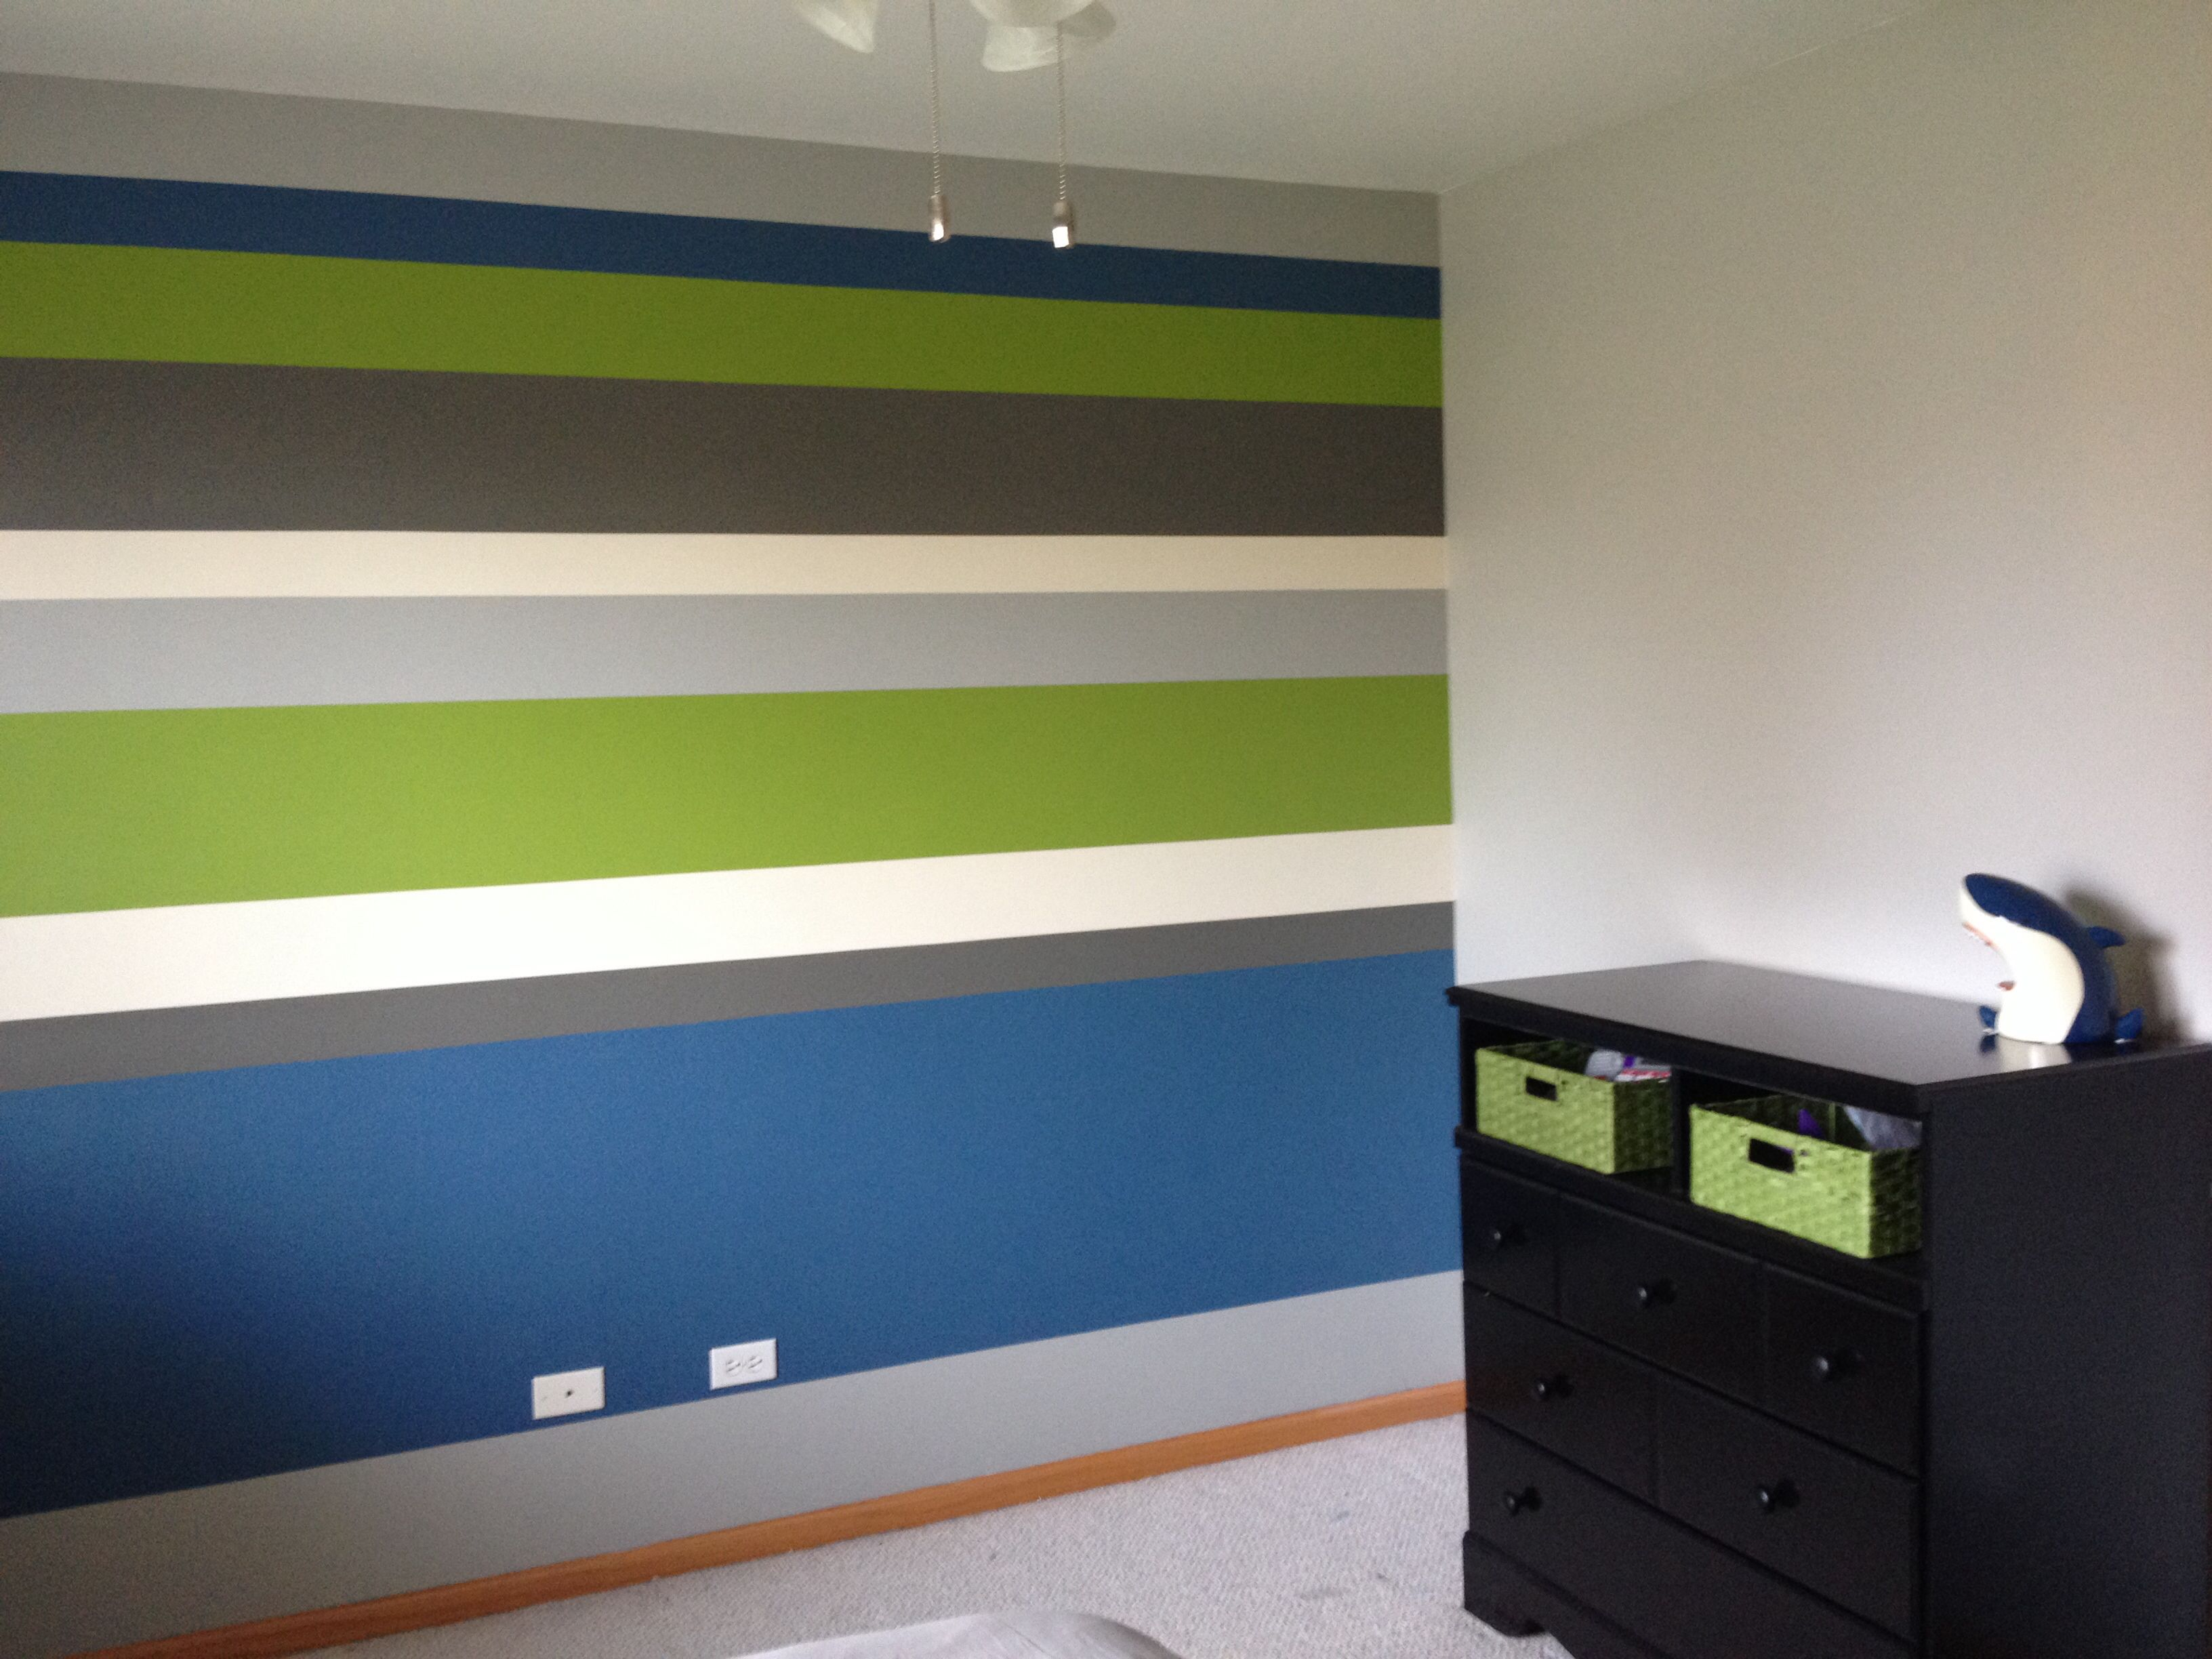 Pin By Jenny Axelsson Vogt On My Pins Boys Bedroom Paint Green Boys Room Green Accent Walls